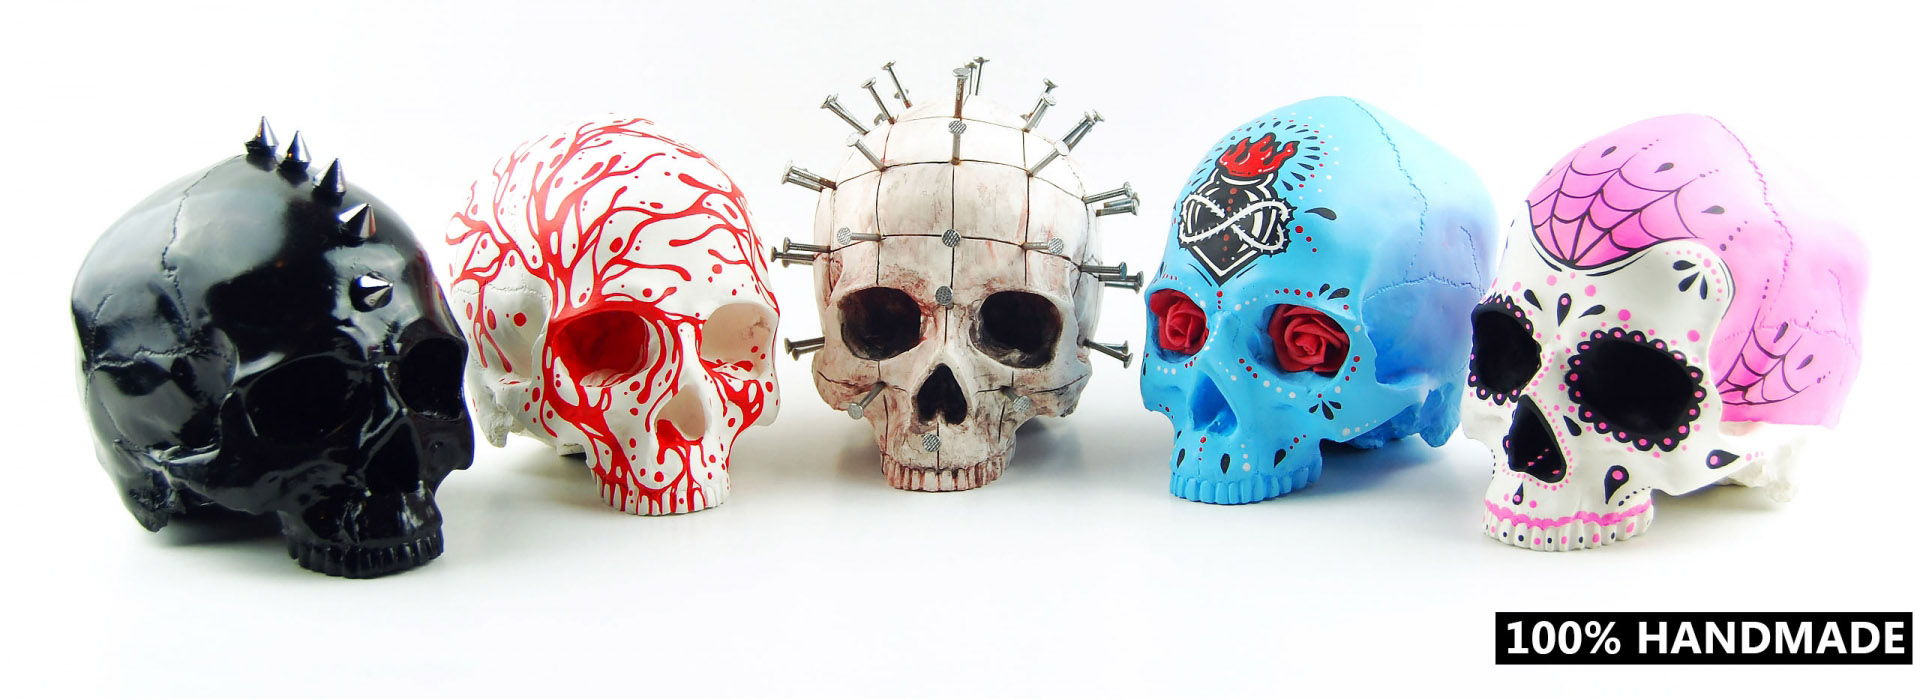 Cranii decorative Creeps